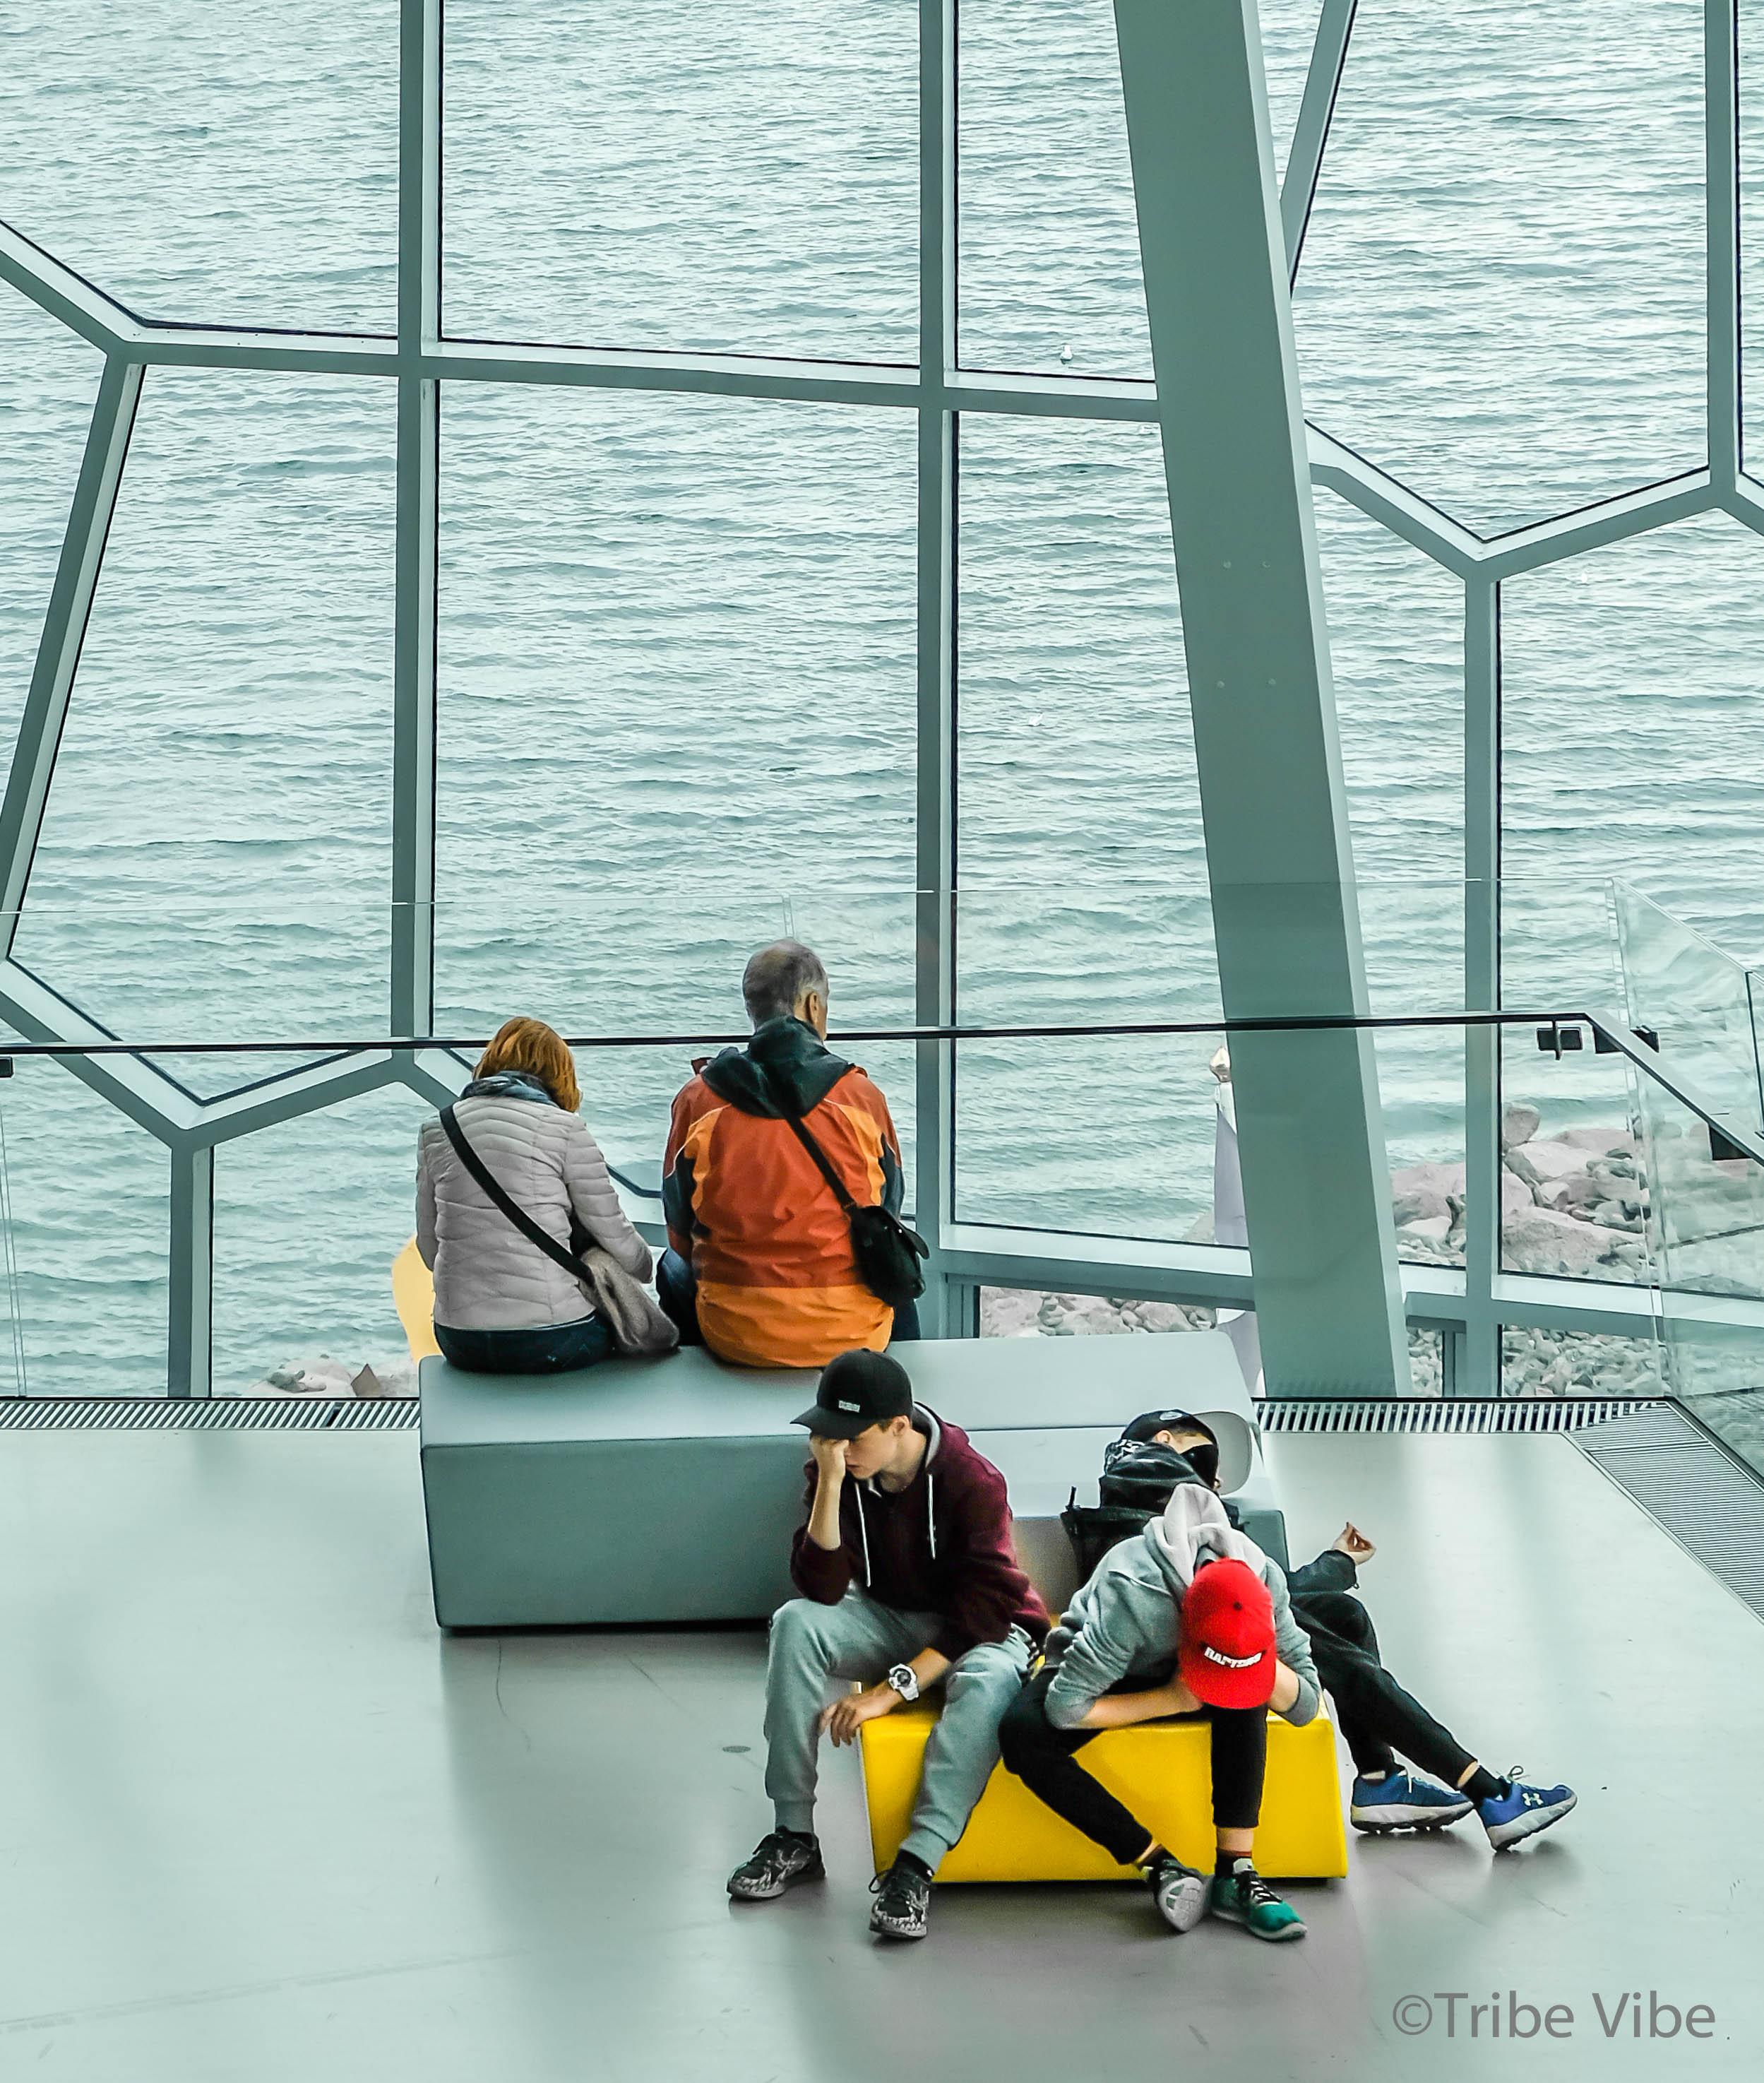 The boys holding in their excitement of the impressive architecture of Harpa